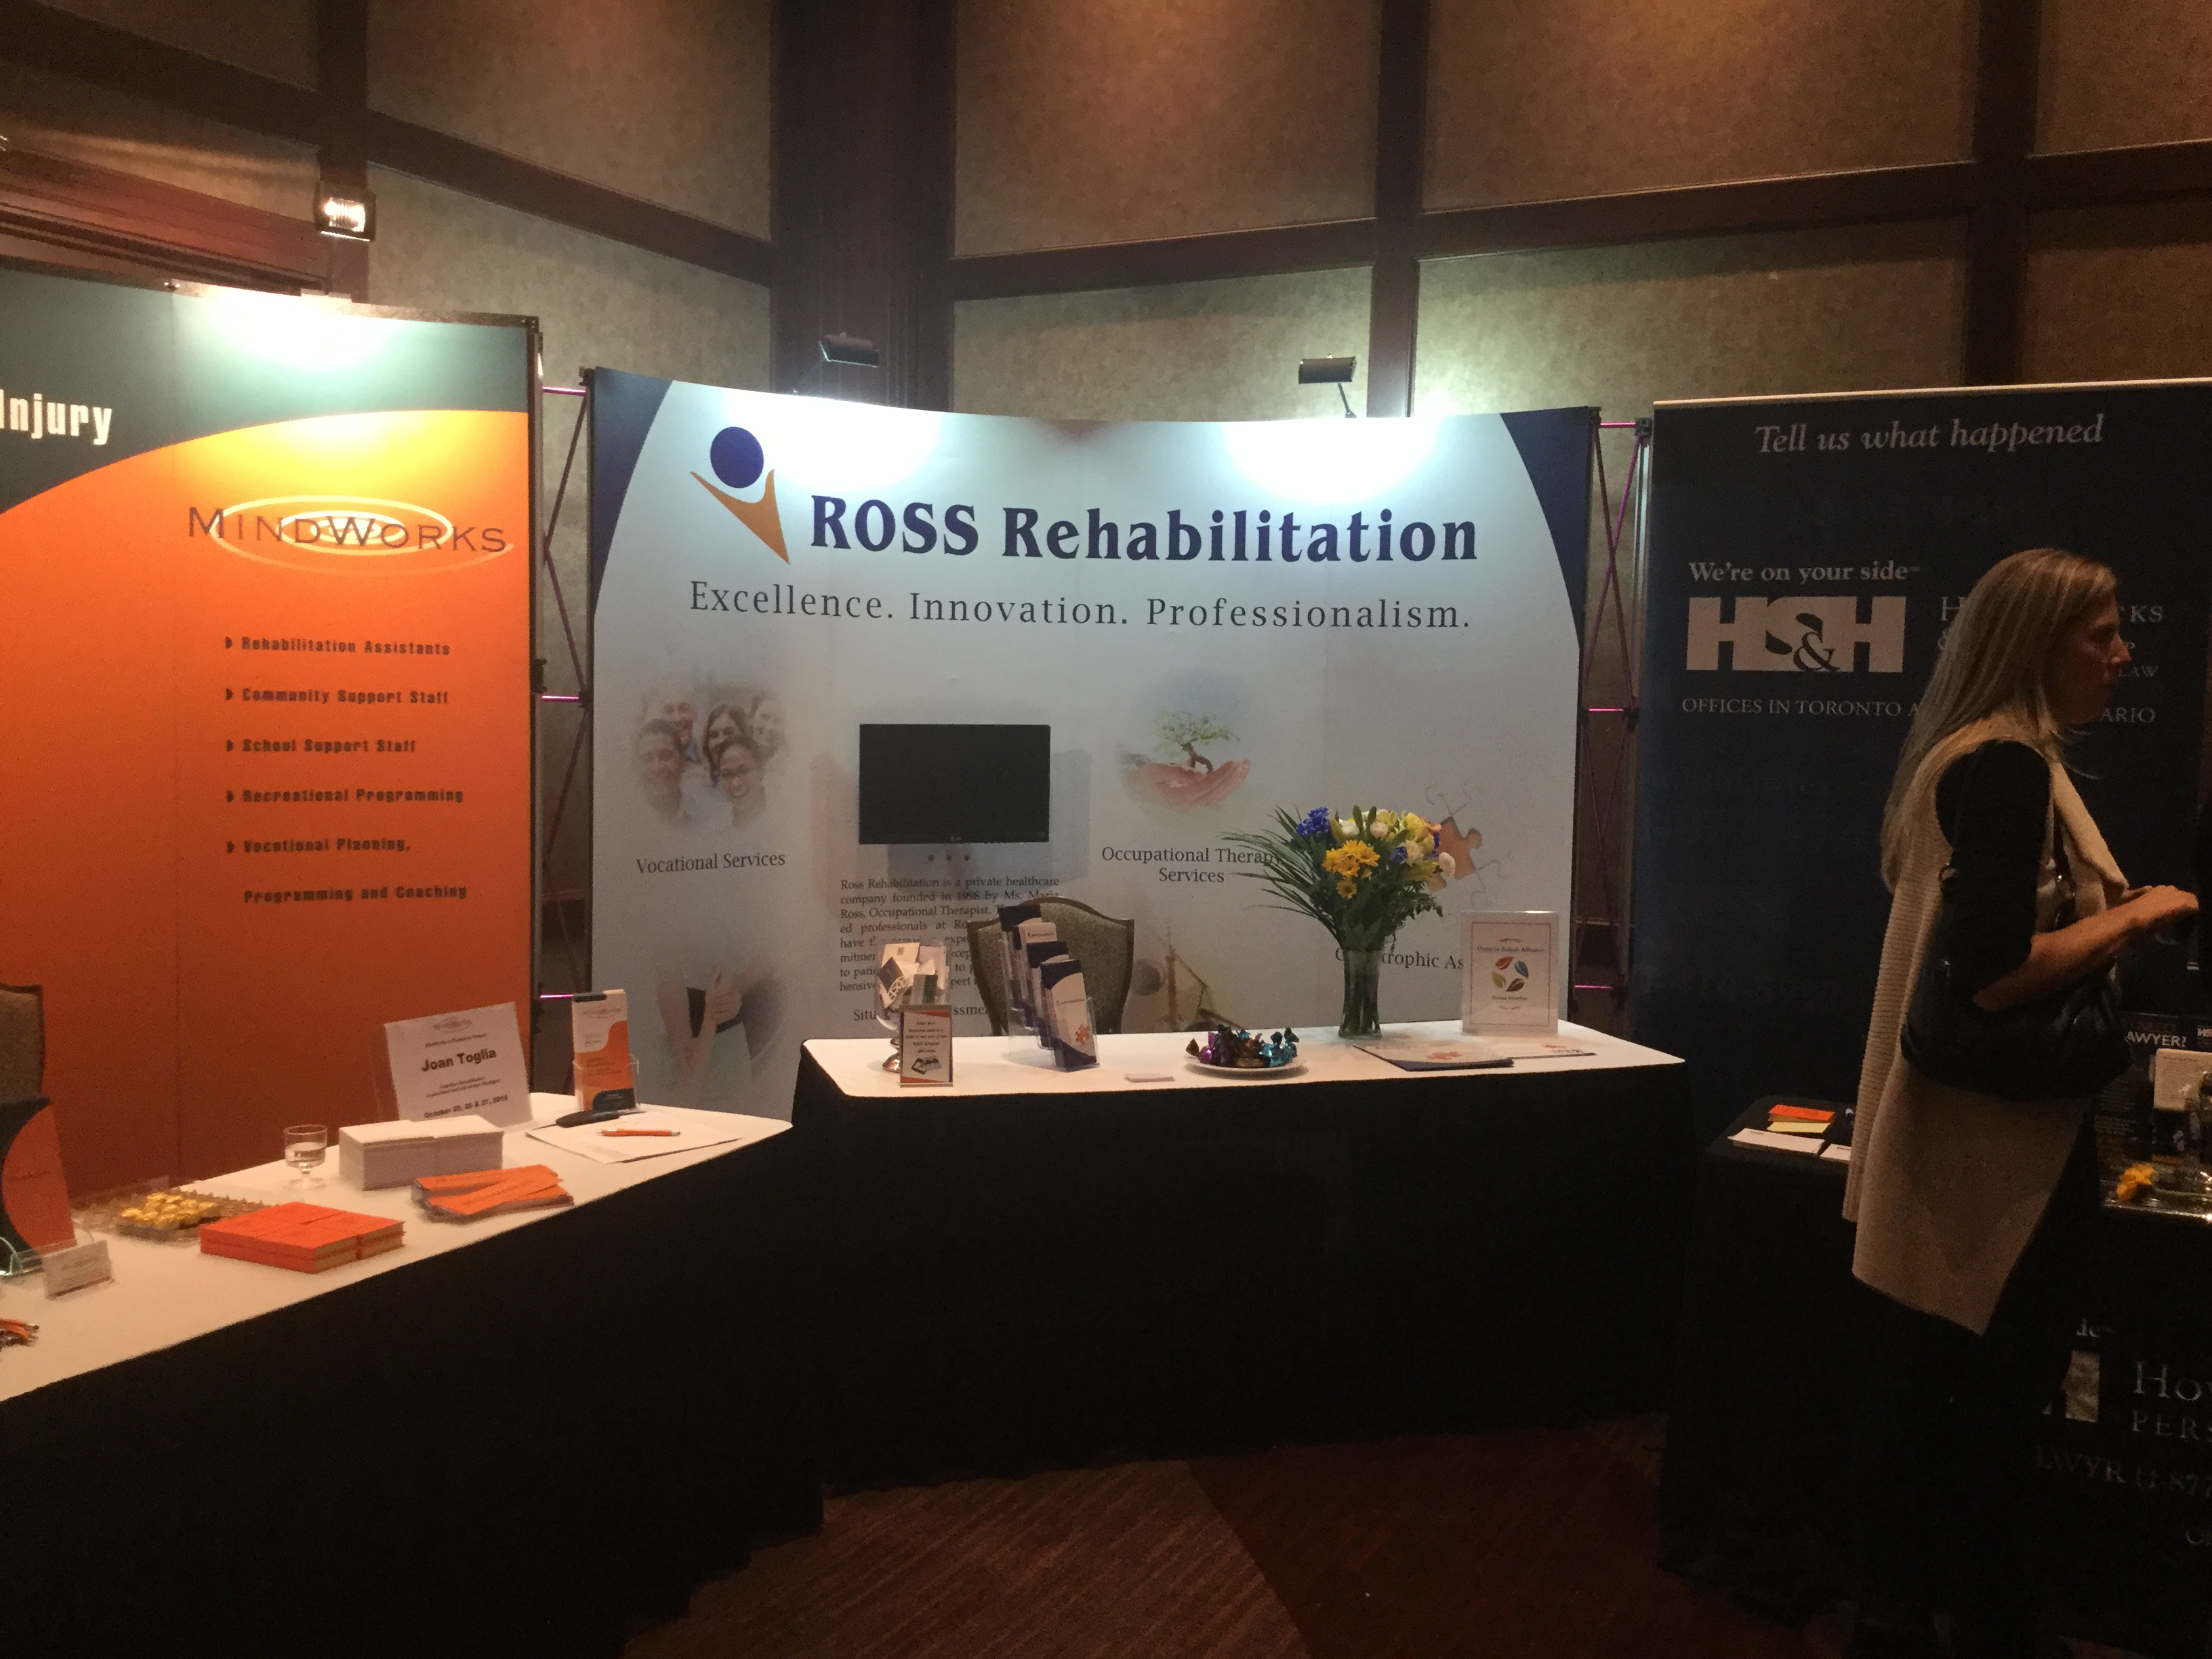 Ross Rehab Presenting Exhibitor Booths At The Following Fall Conferences Ross